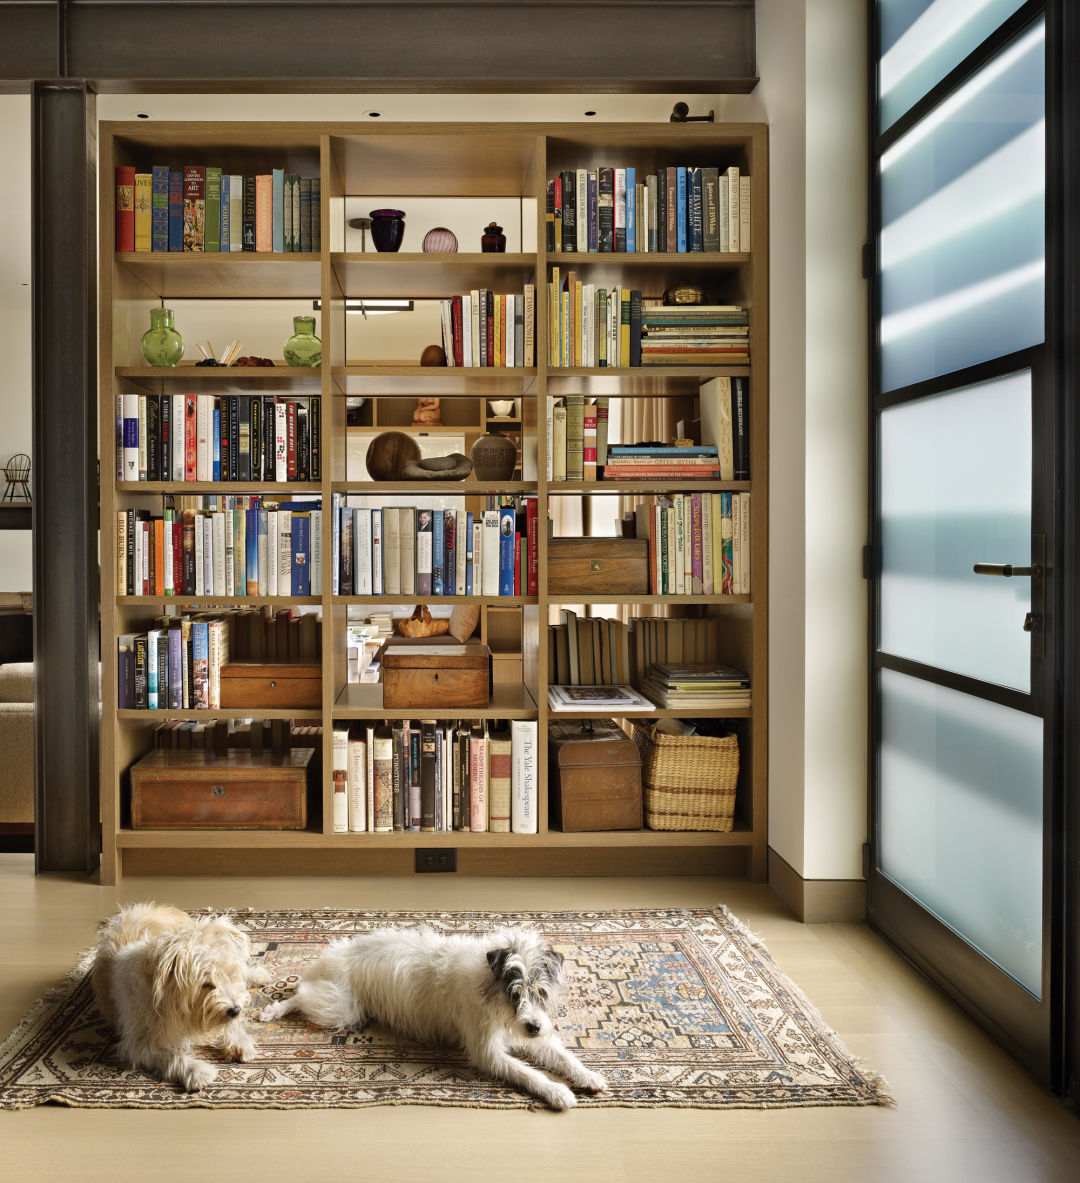 How To Design A Cohesive Bookshelf Seattle Met